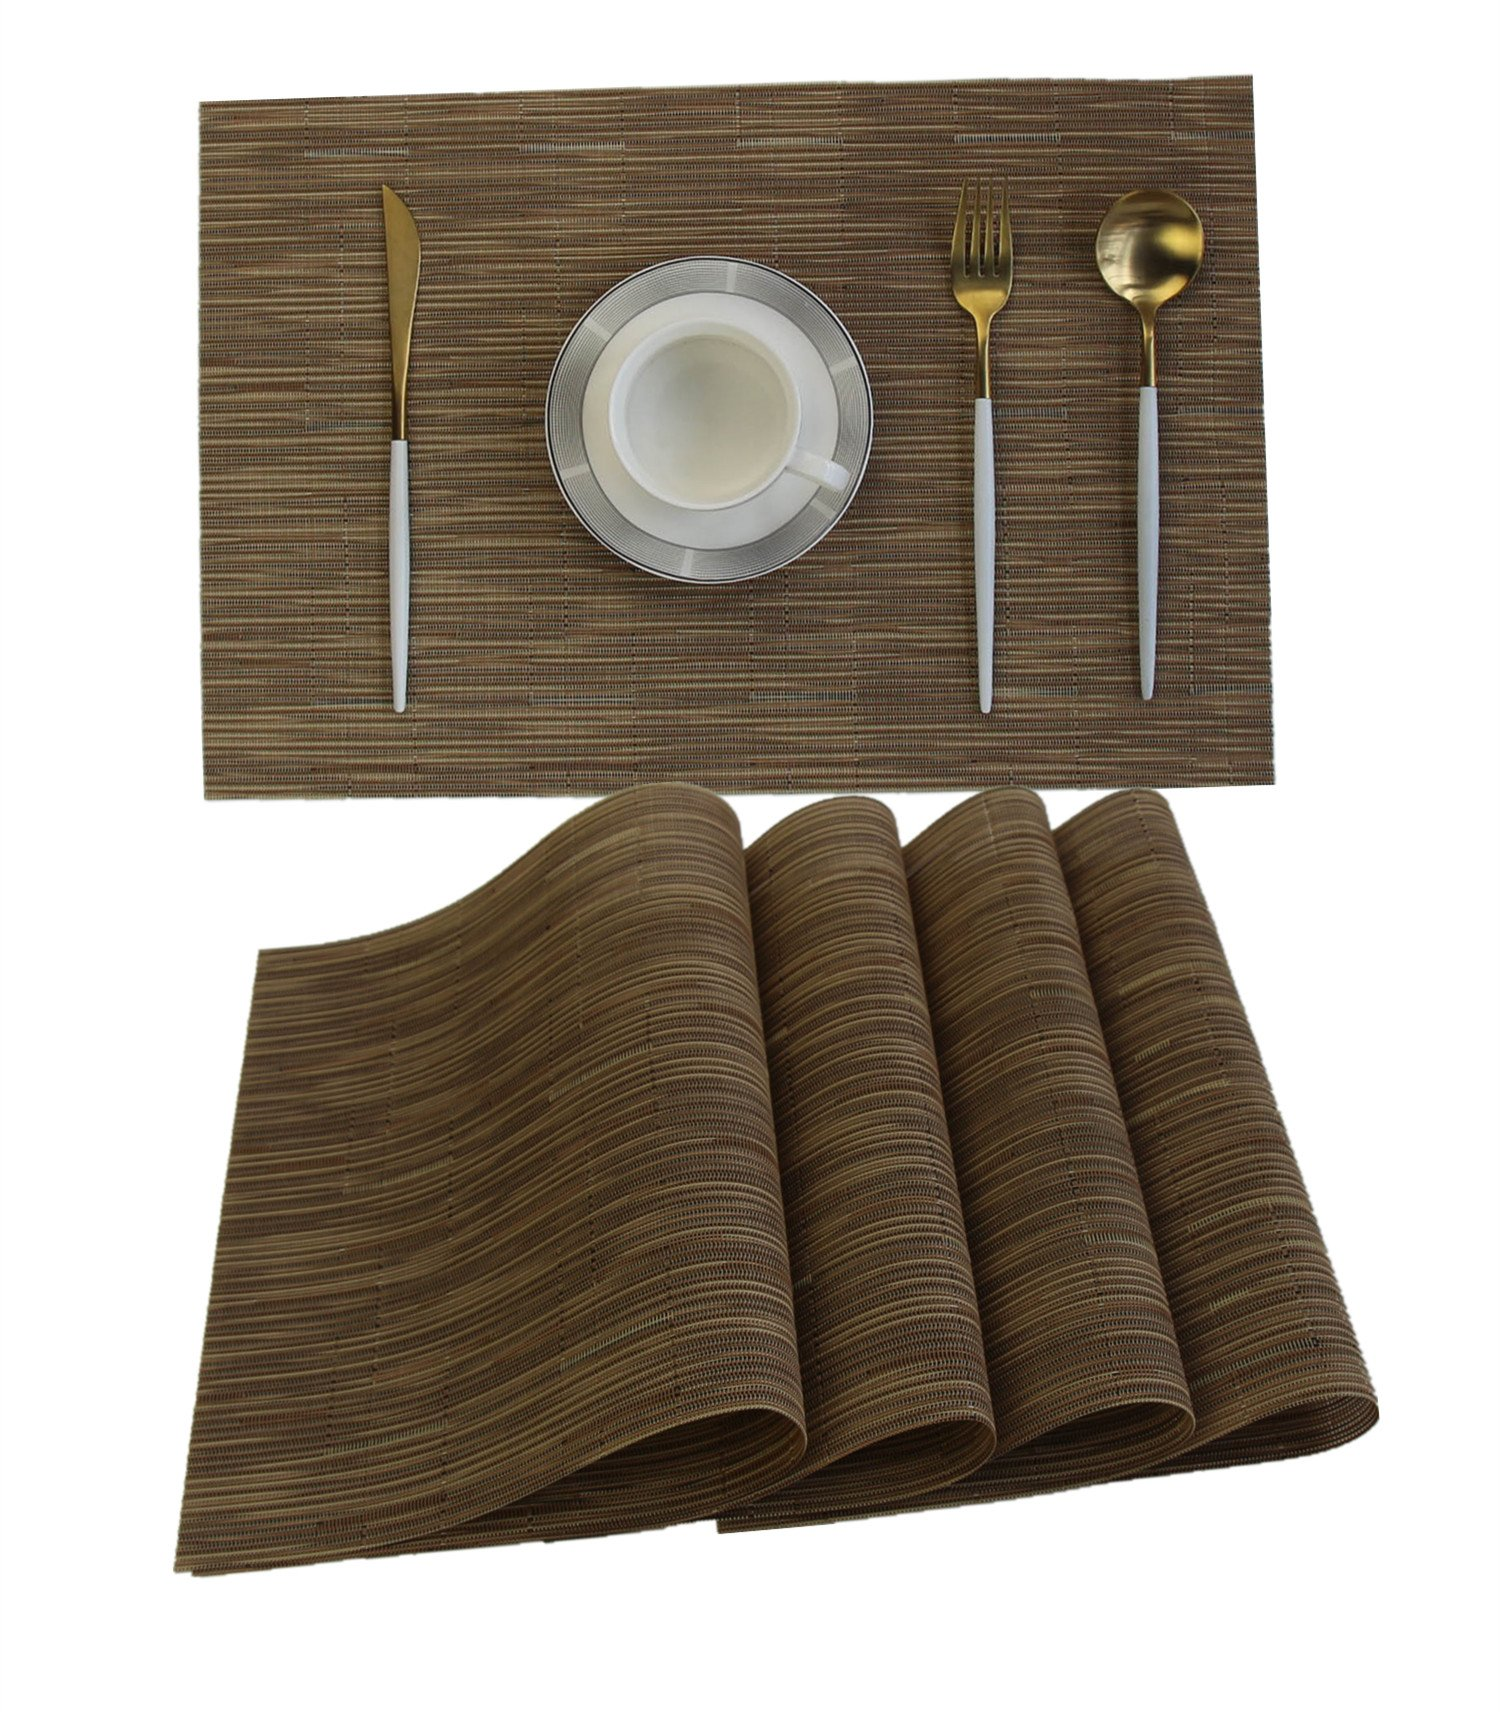 WANGCHAO Placemats Set of 8 Crossweave Woven Vinyl PVC Placemat Washable Table Mats for Kitchen Dinning Table (ombre Khaki, set of 8)